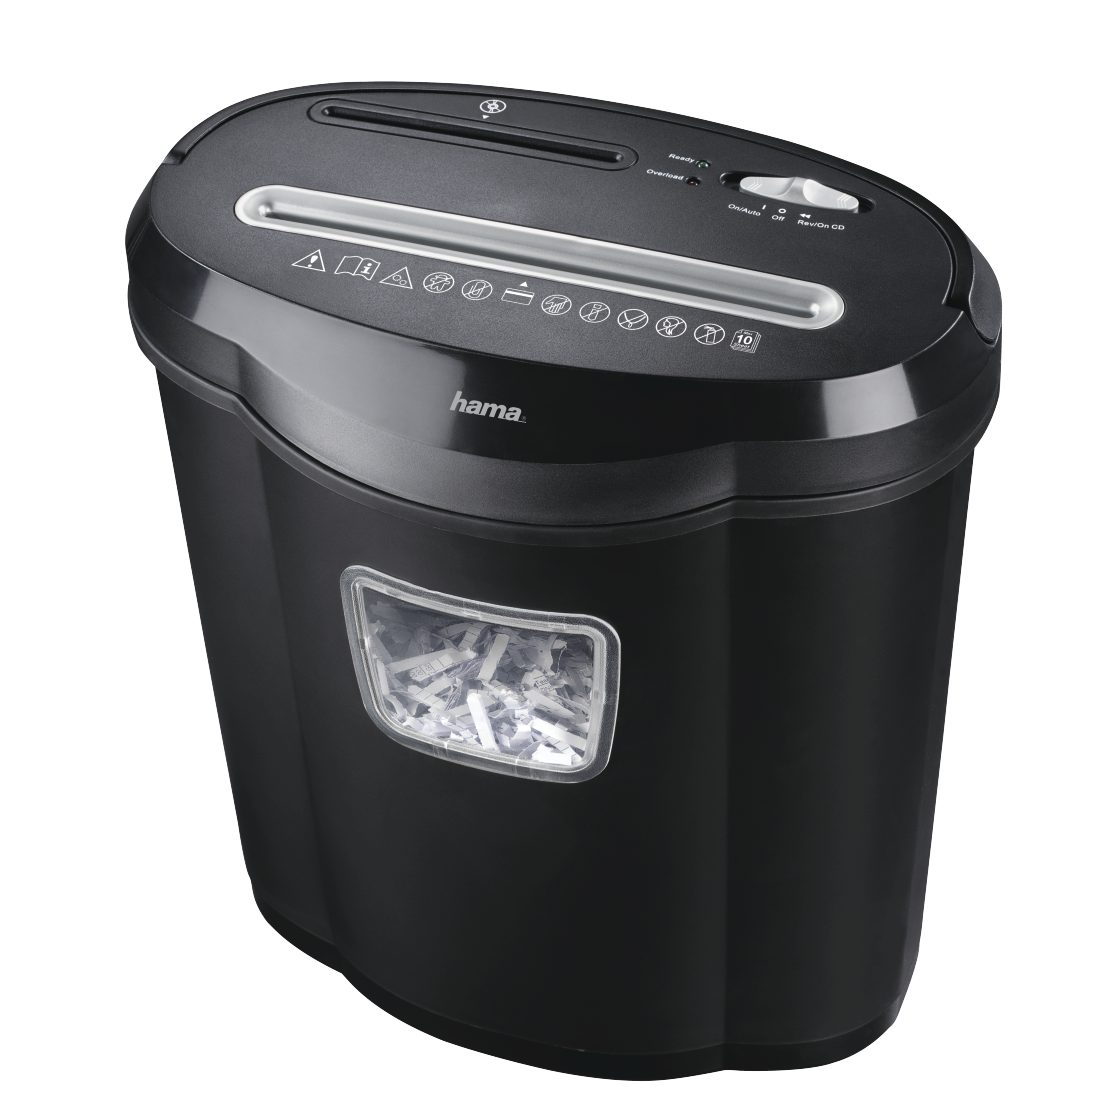 "abx High-Res Image - Hama, ""Home X10CD"" Shredder, Shredder with Security Level E2 O1 P3 T3"